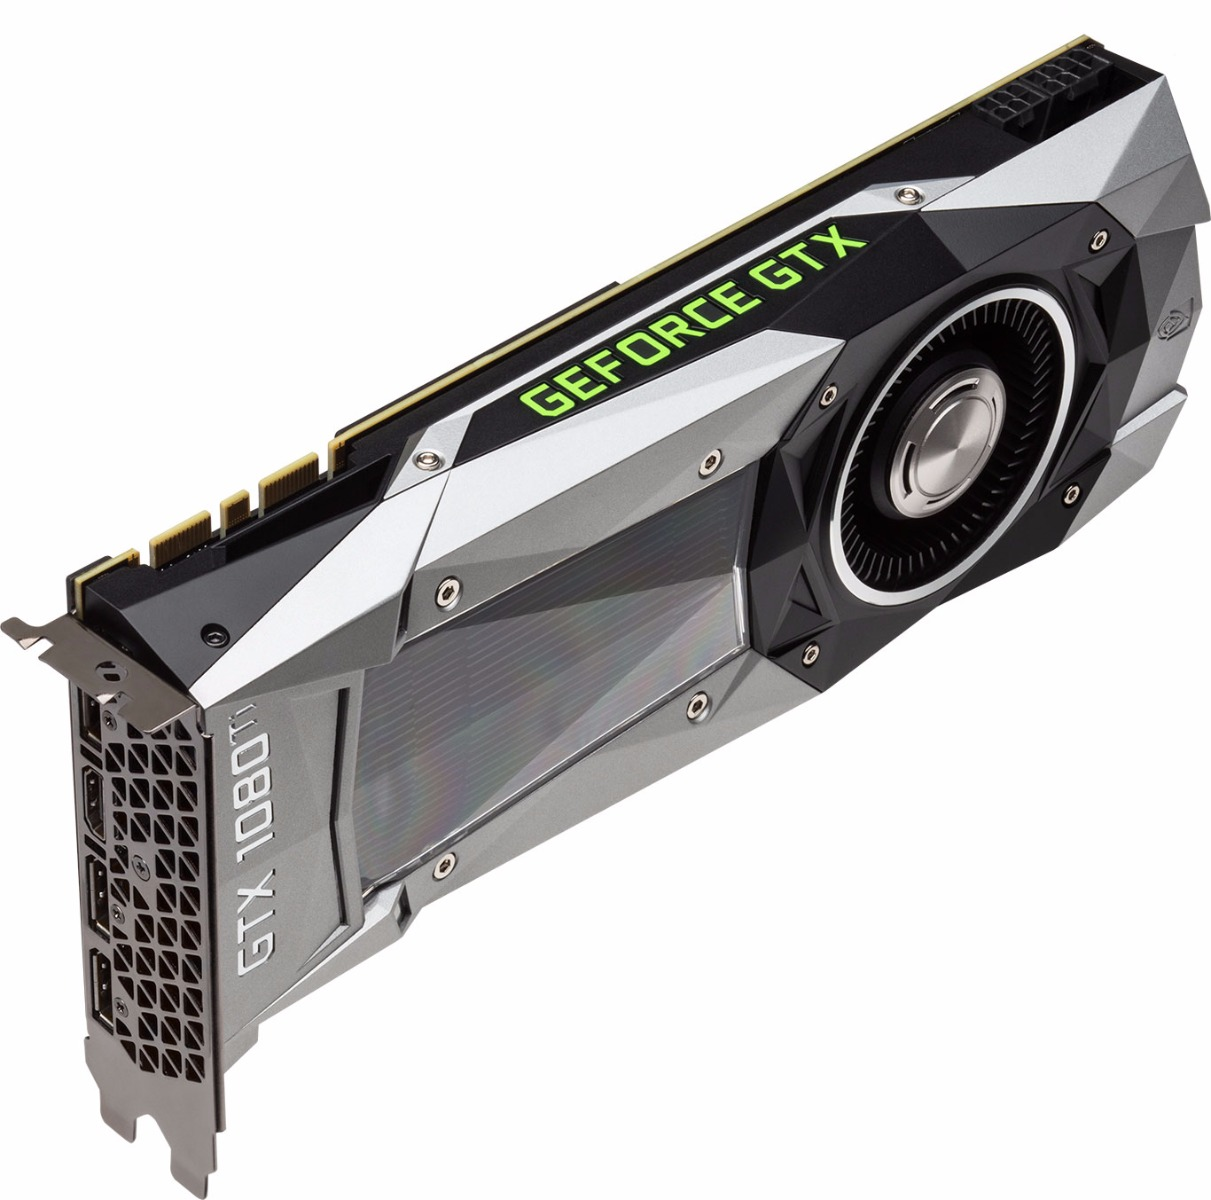 NVIDIA GeForce GTX 1080 Ti Review - The Fastest Gaming Graphics Card Yet